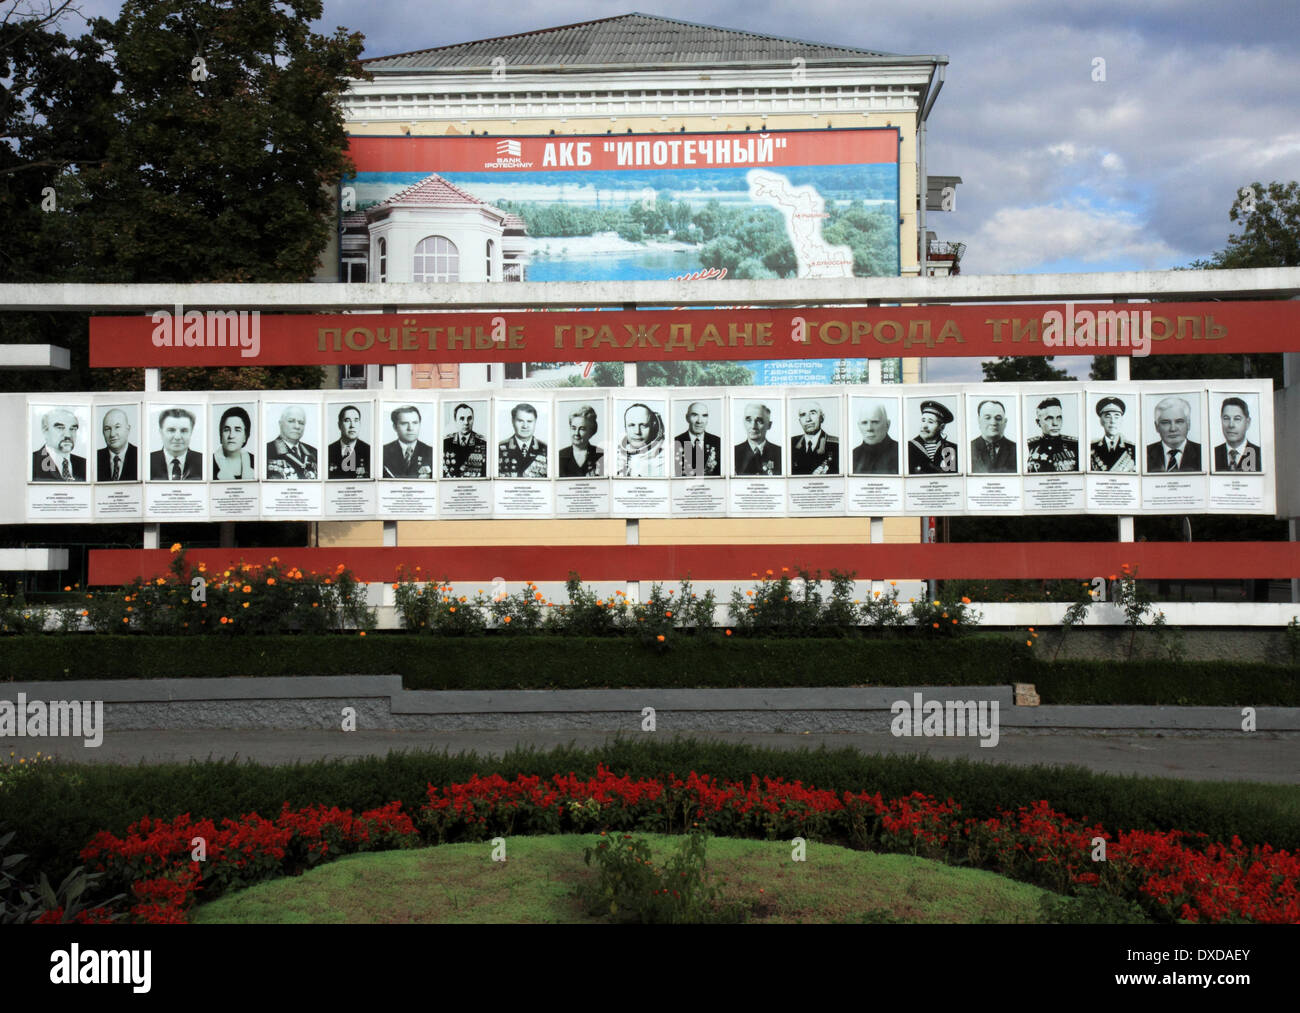 Porträts of the 'Heros of the 25. October' near the supreme soviet in Tiraspol, the capital of Transnistria. The in 1992 self-proclaimed state is not accredited by any other state. - Stock Image